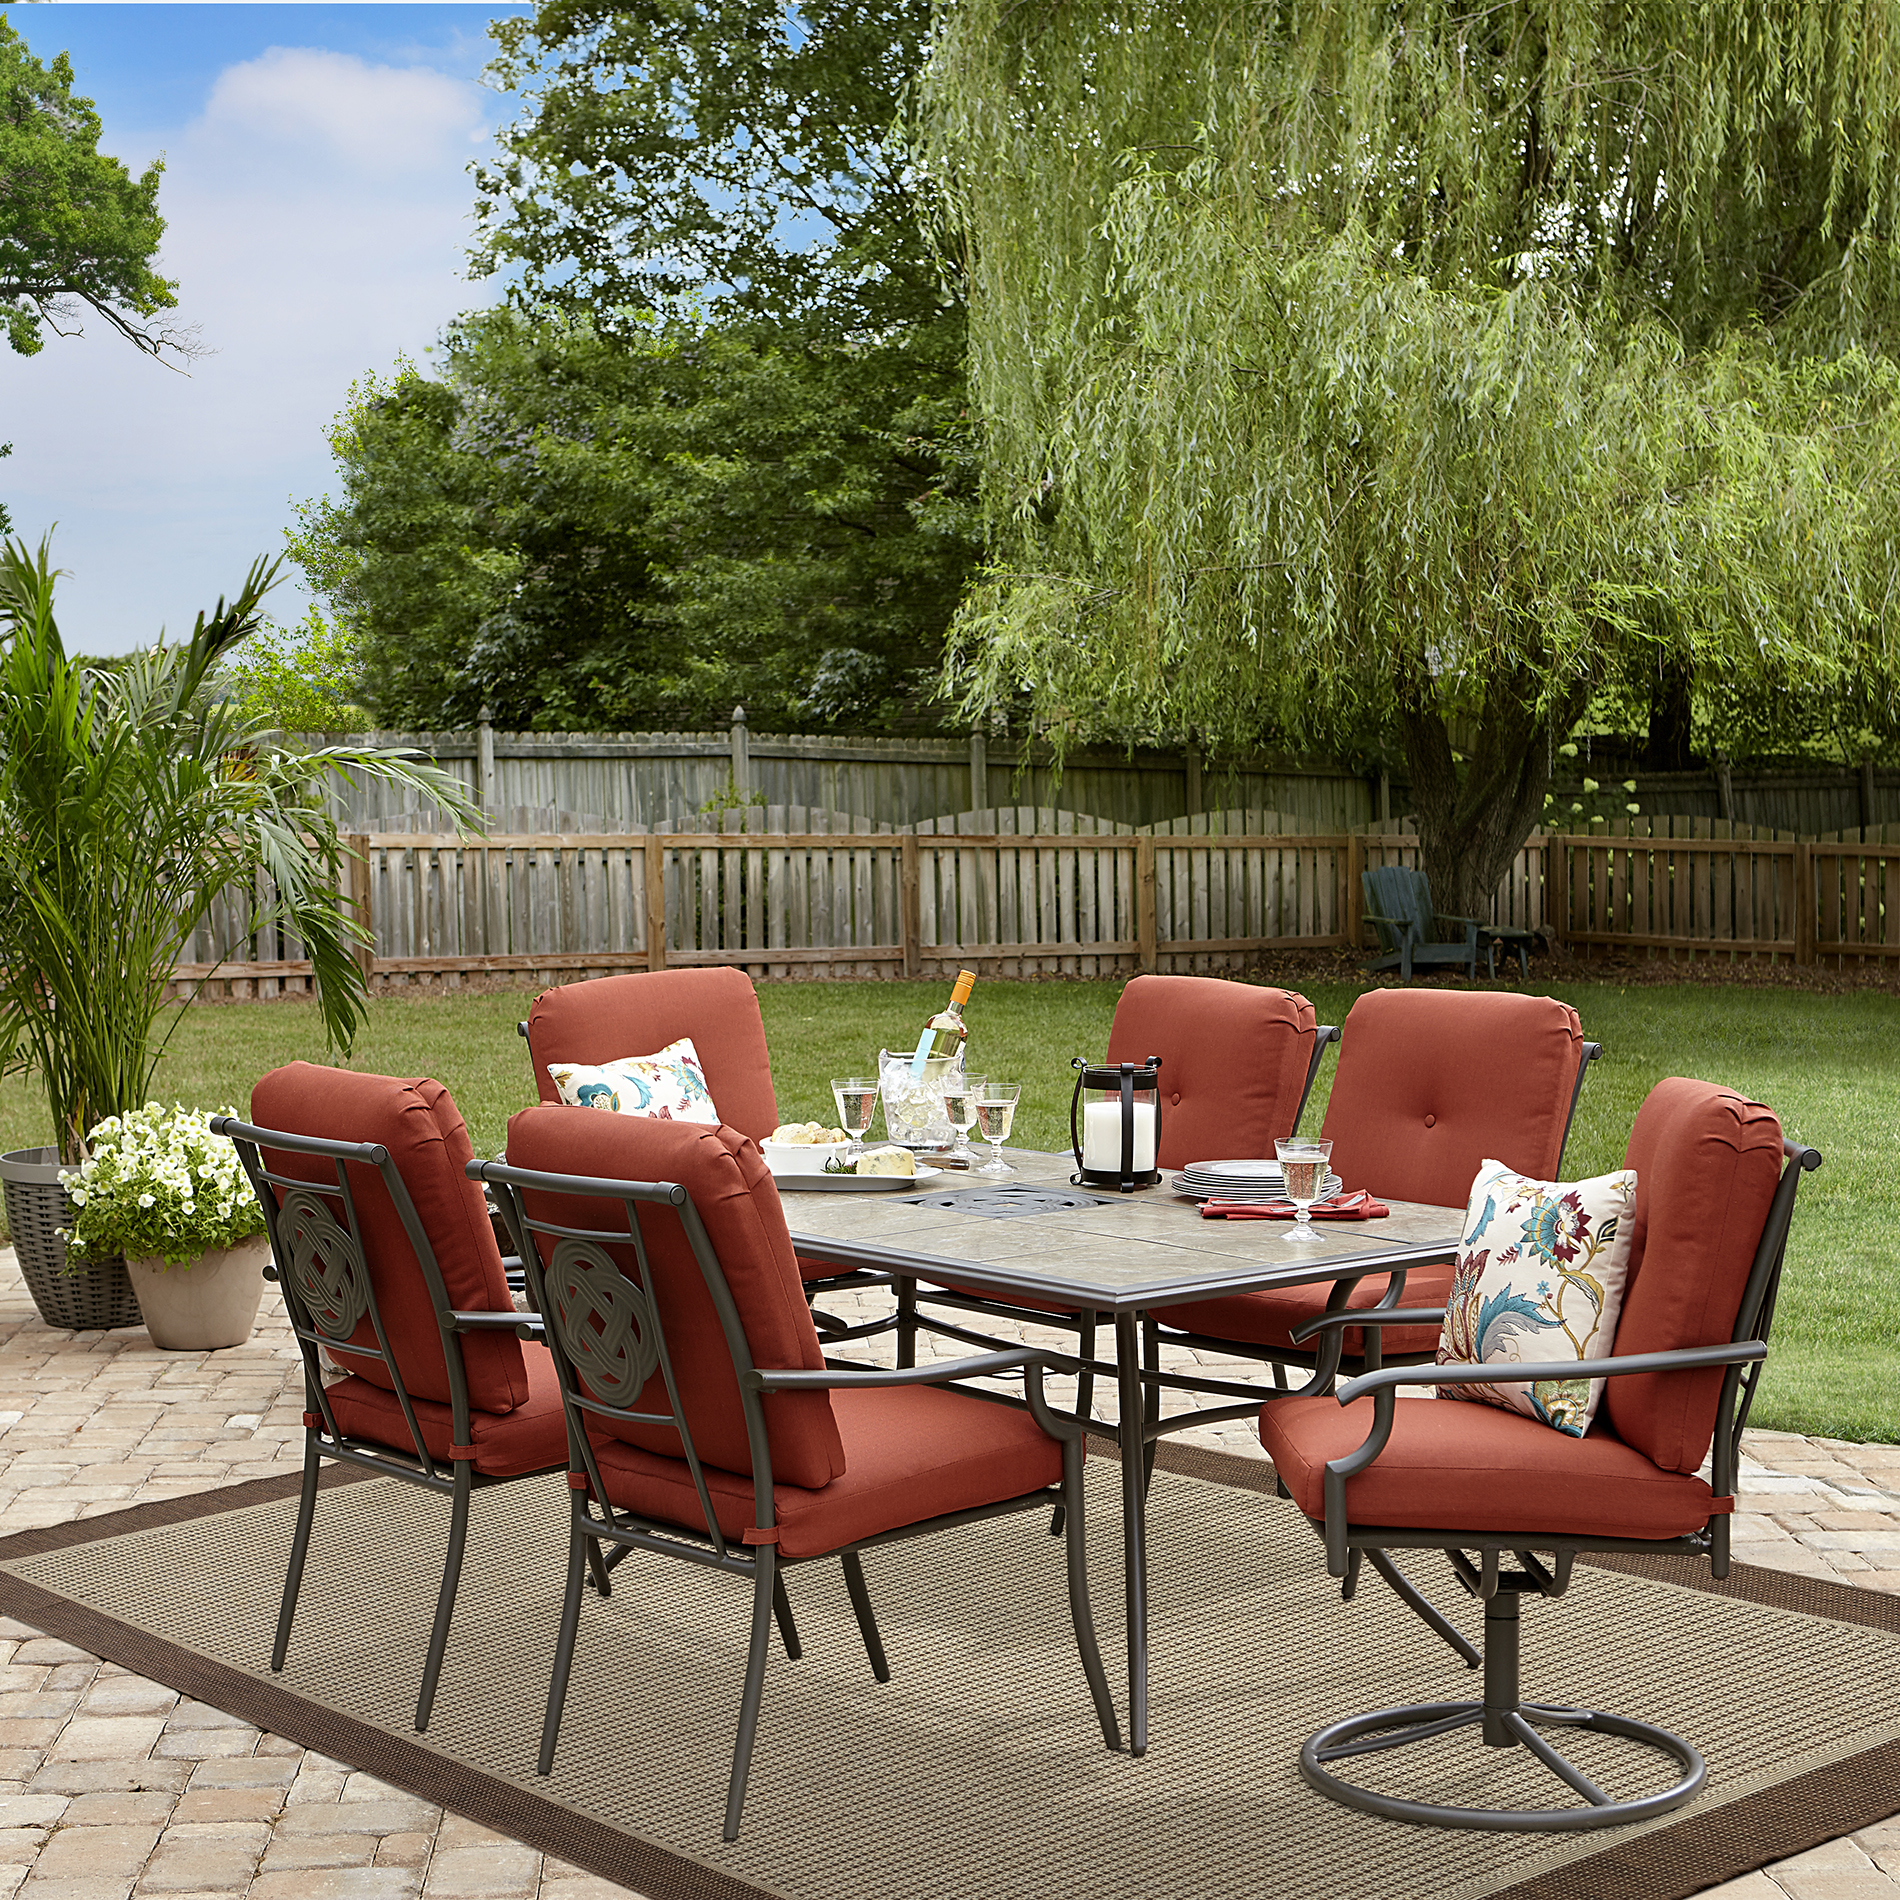 Garden Oasis Brookston 7 Piece Dining Set Terracotta Limited Availability Outdoor Living - Garden Furniture Dining Set Clearance